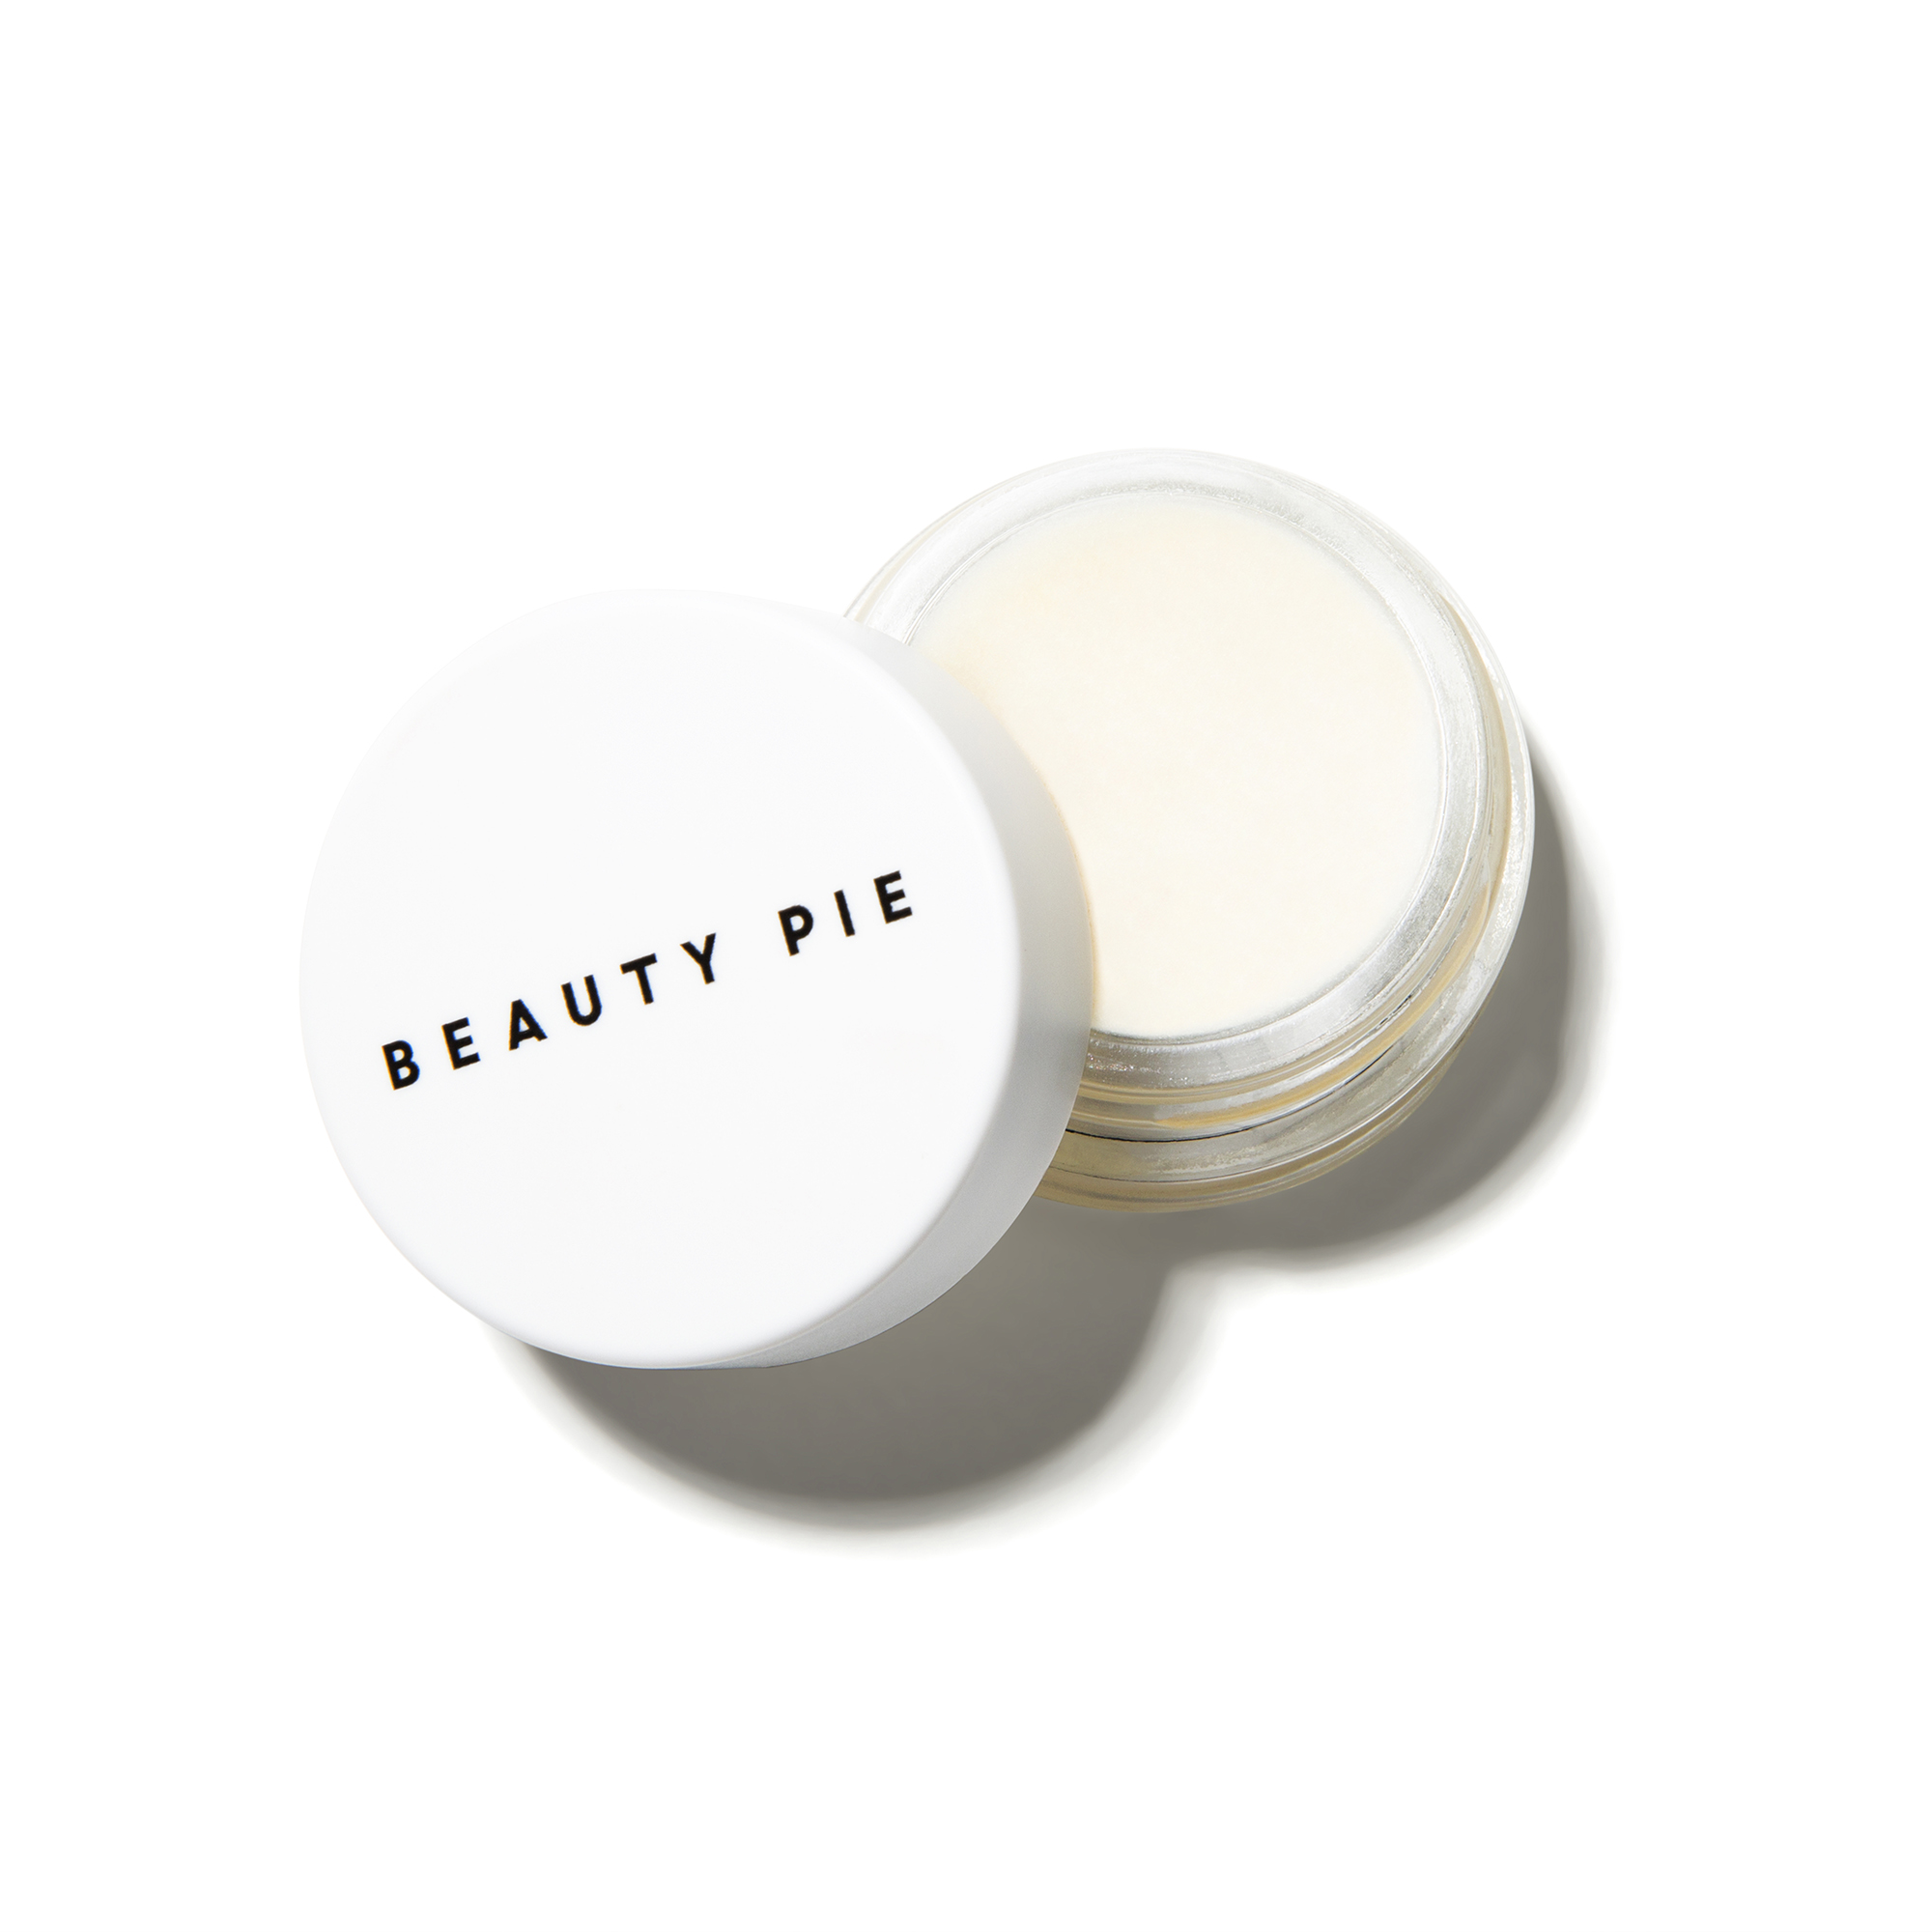 Super Moisture Lip Balm With Avocado & Sweet Almond Oils by Beauty Pie